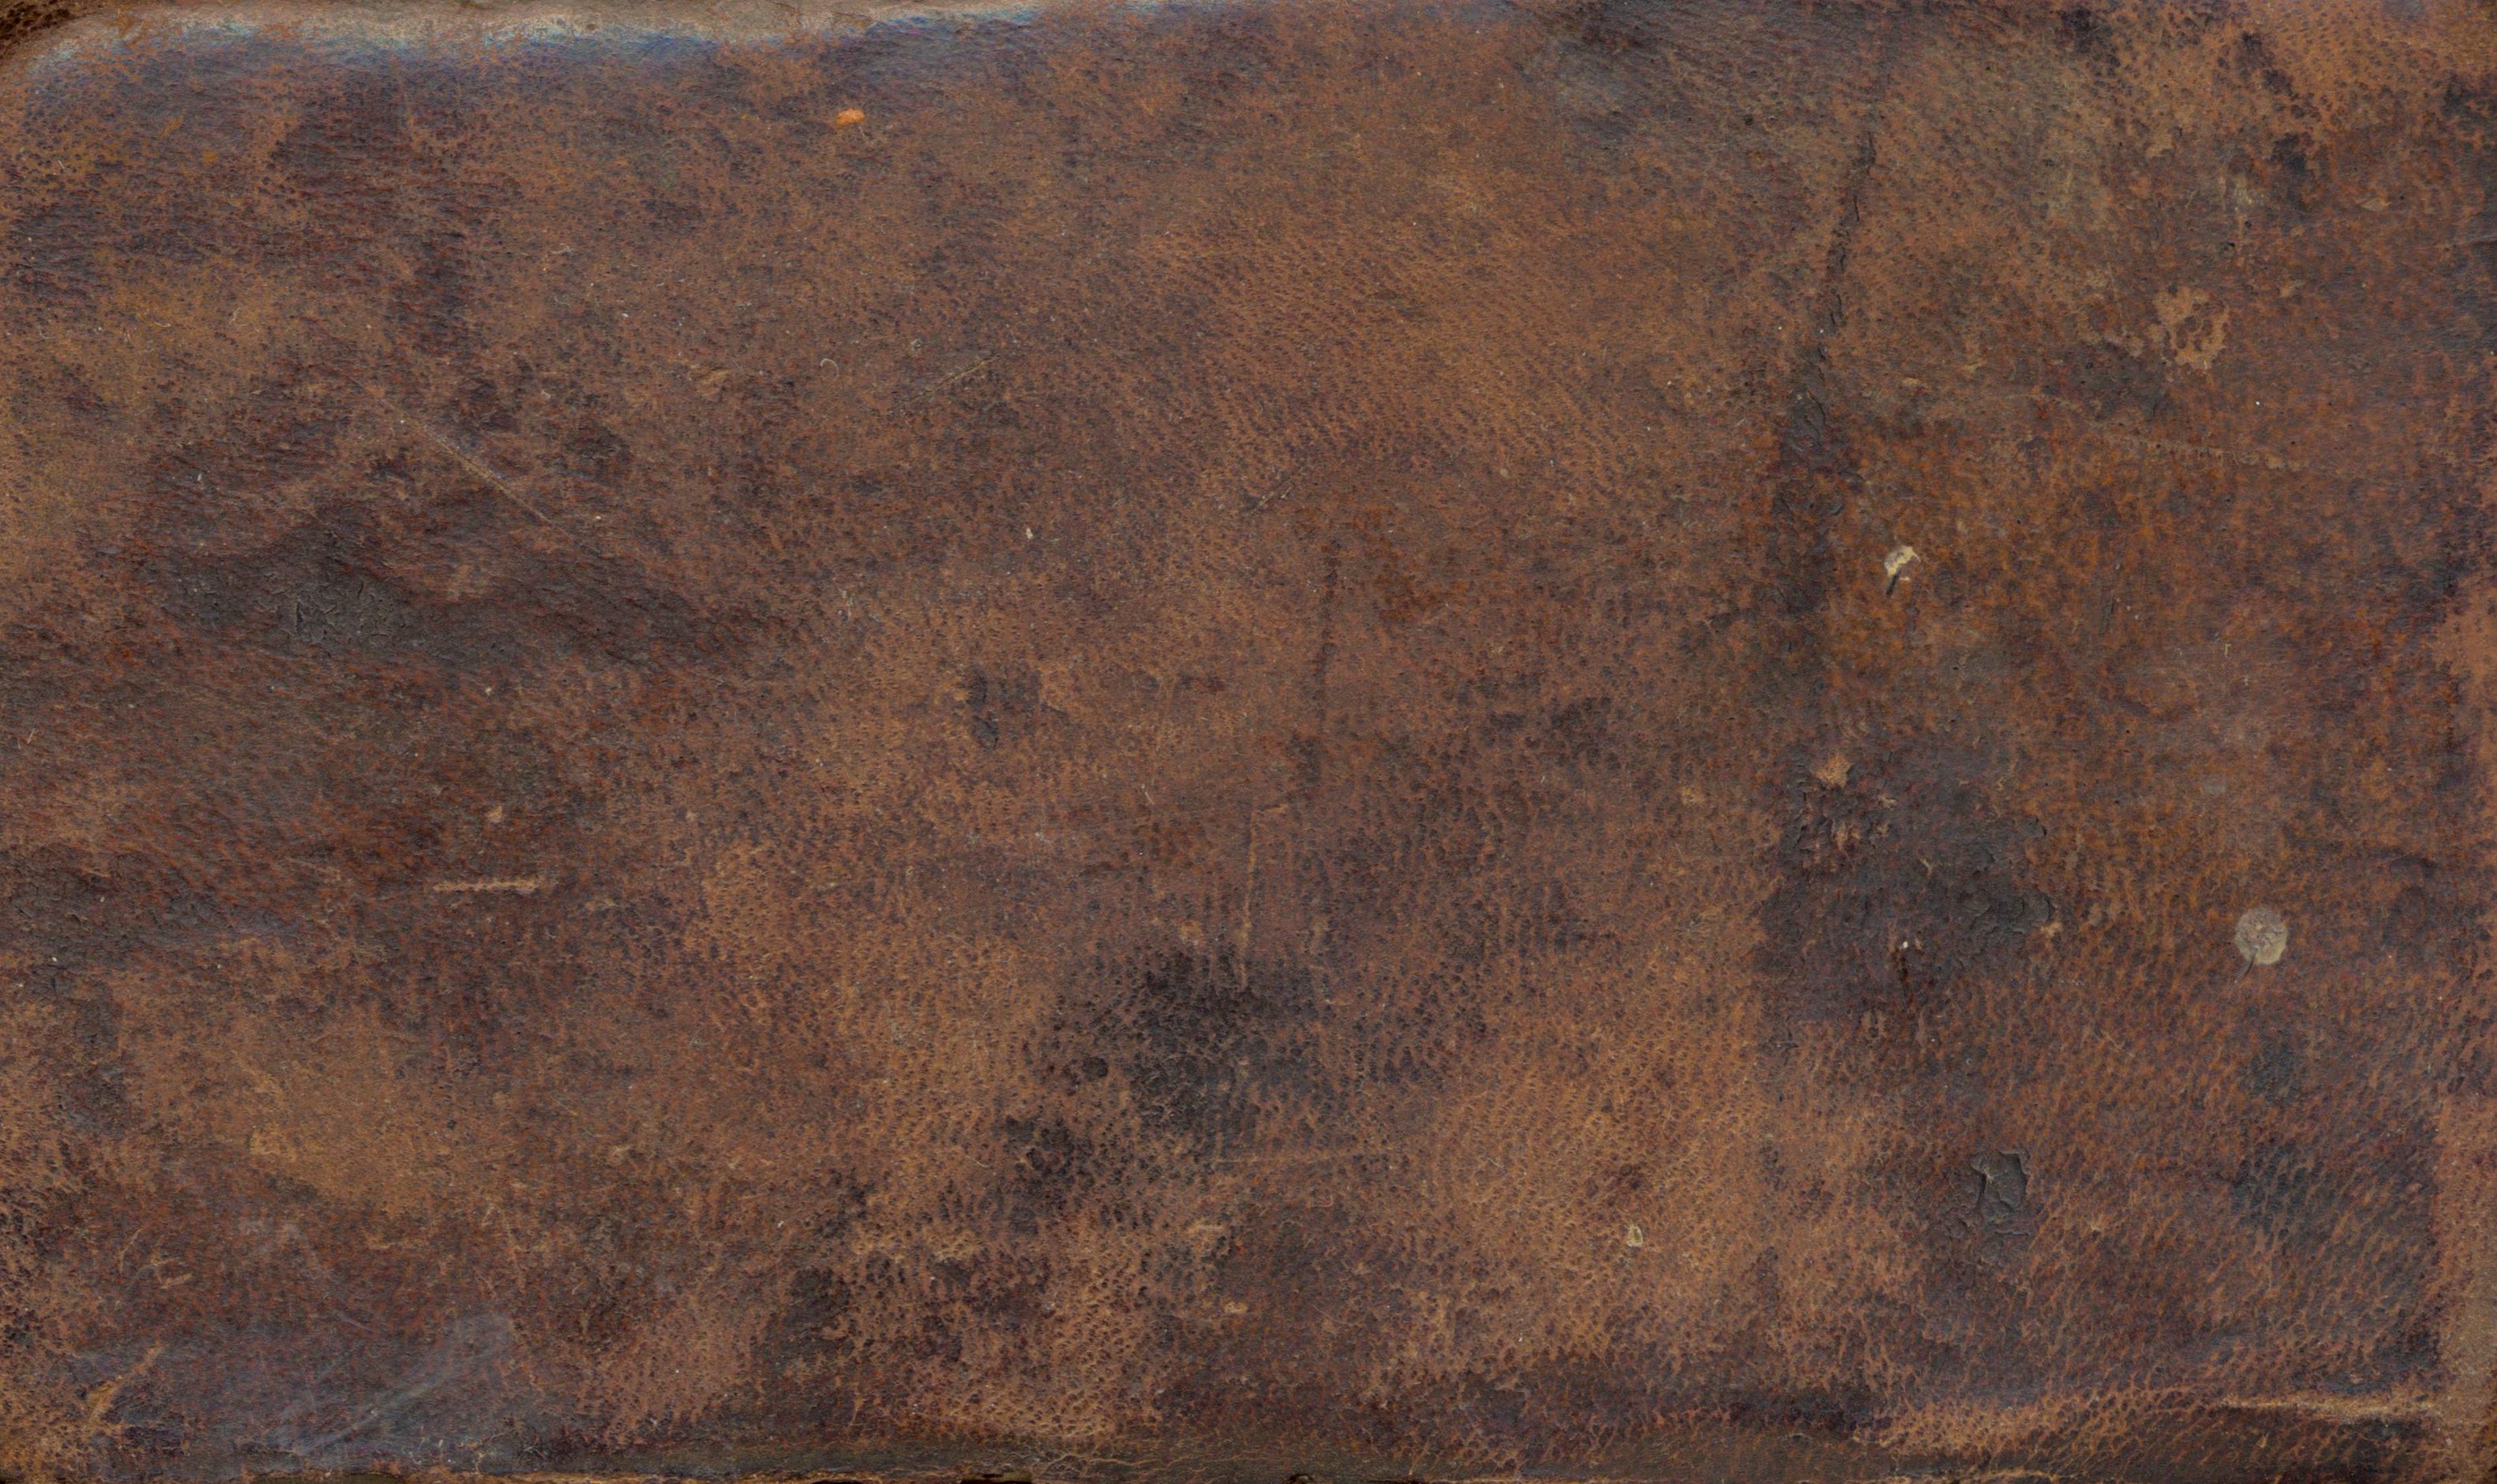 15 Great vintage texture for your art | Textures for photoshop free